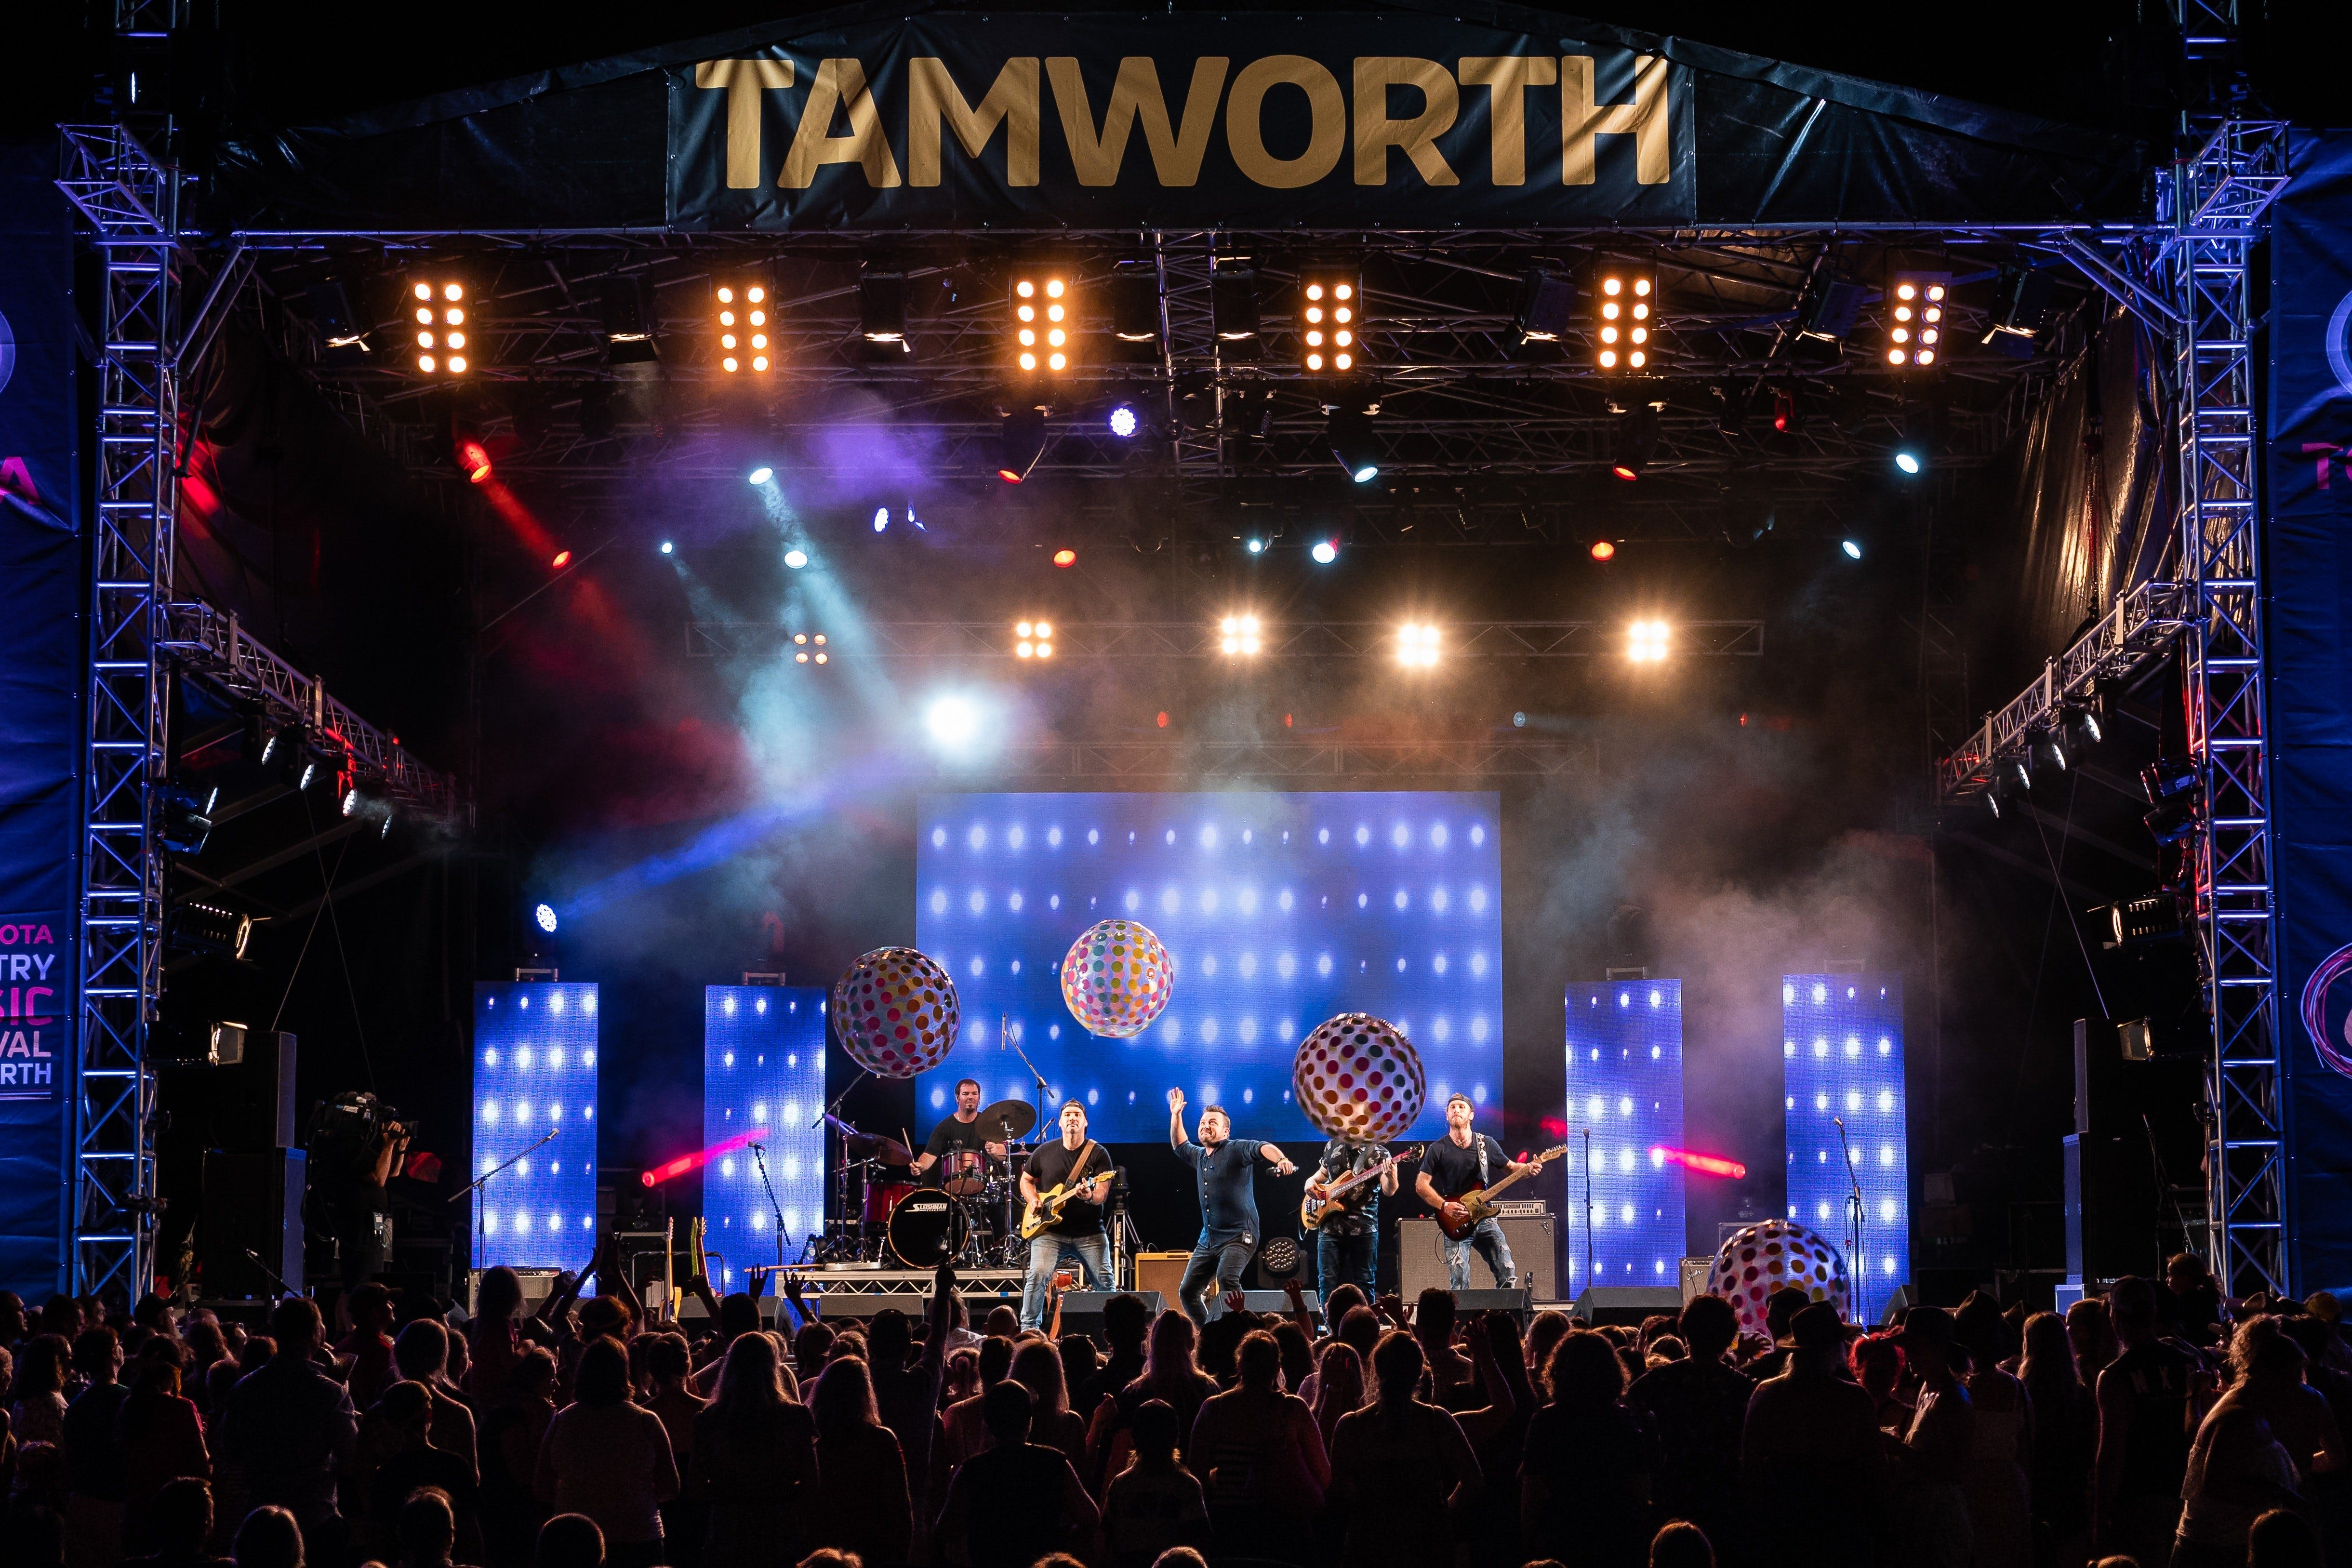 Toyota Country Music Festival Tamworth - St Kilda Accommodation